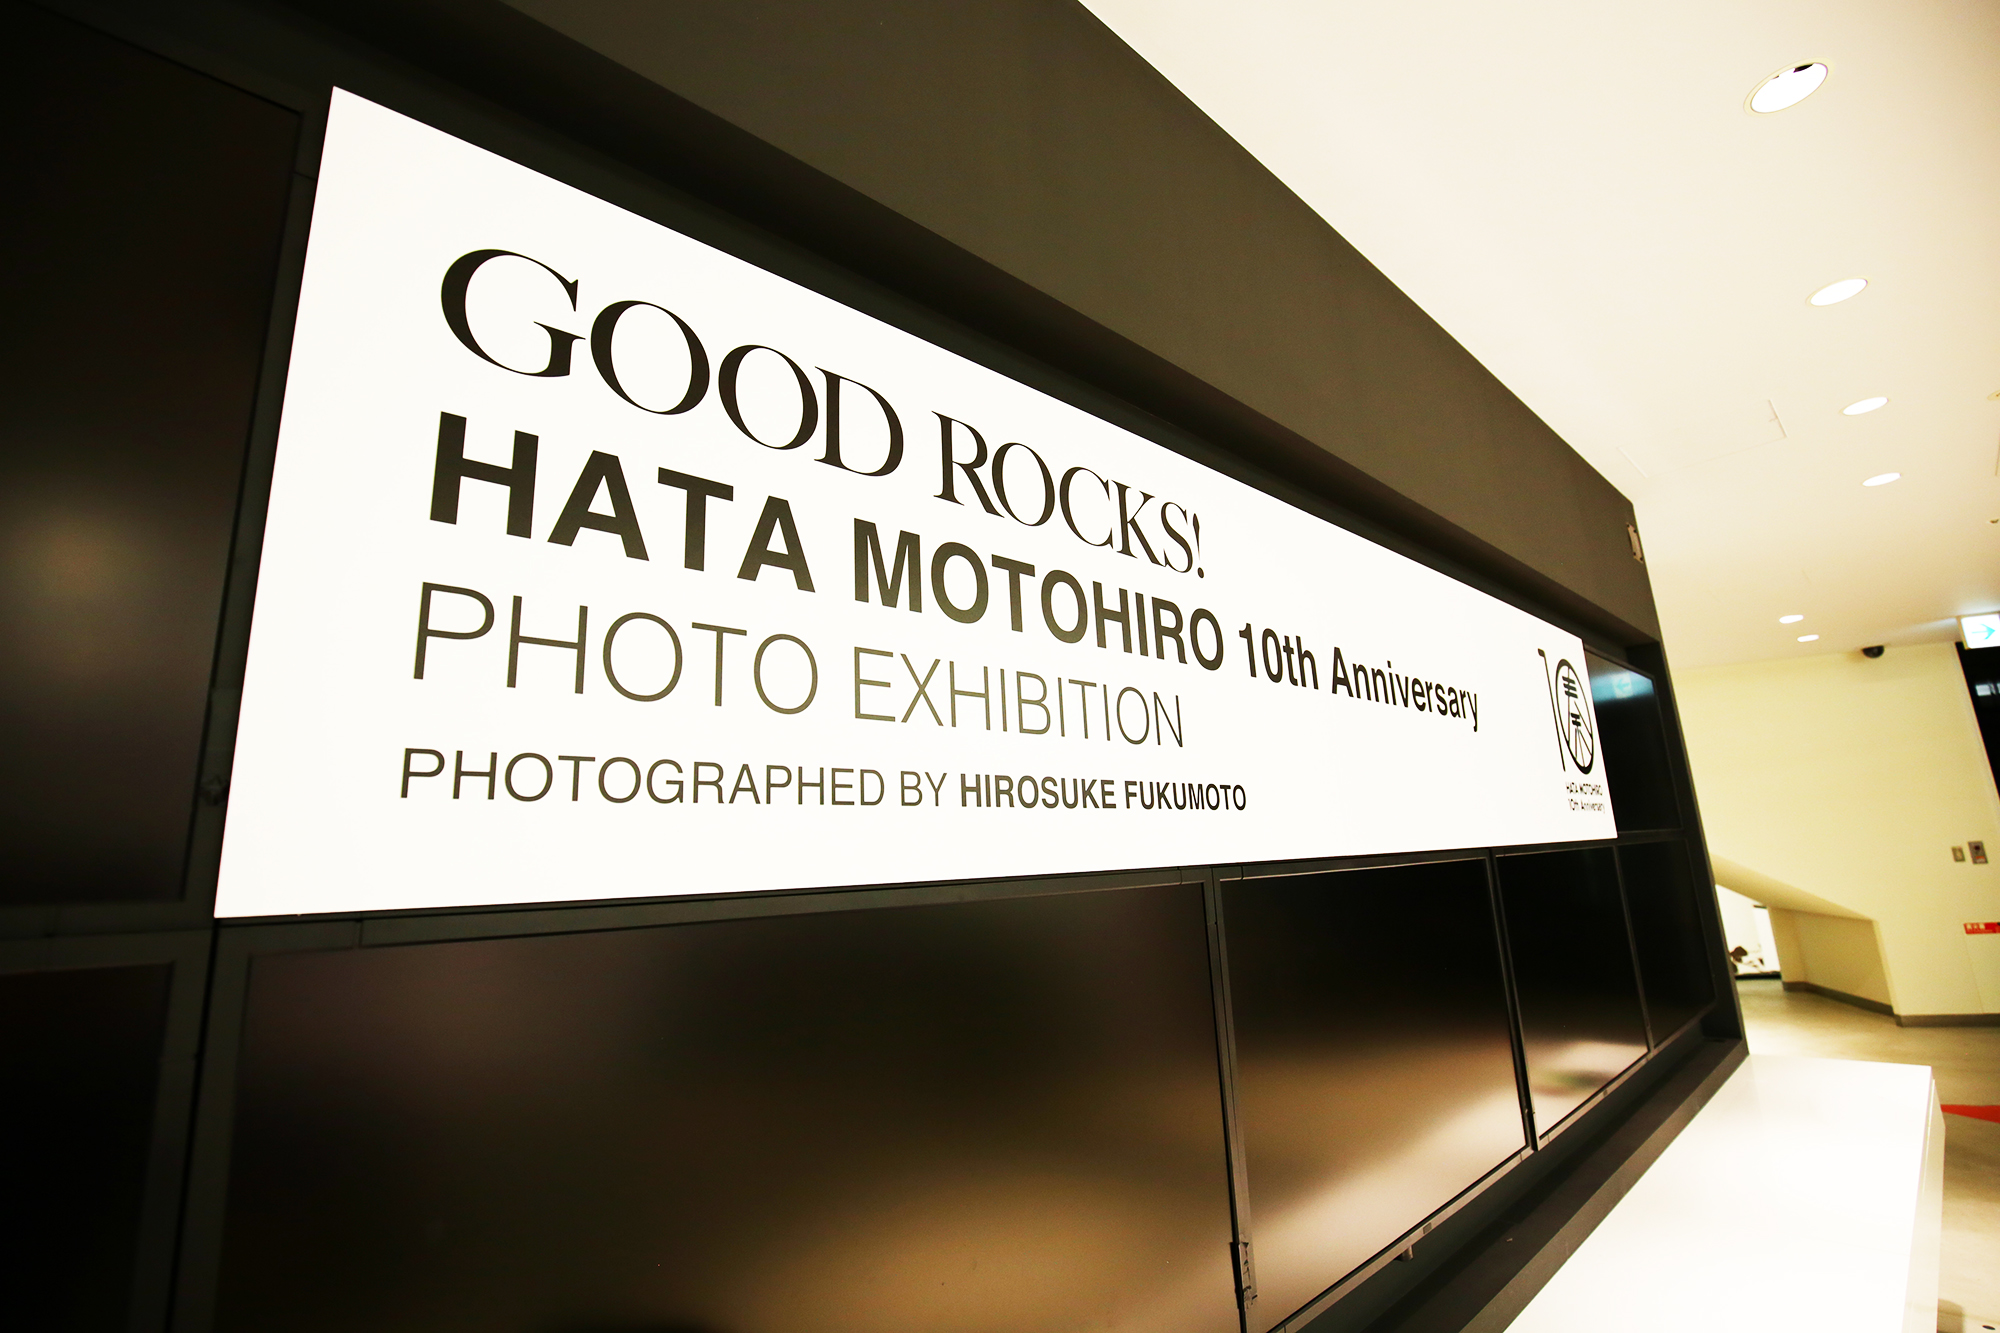 【大阪】GOOD ROCKS! HATA MOTOHIRO 10th Anniversary PHOTO EXHIBITION  PHOTOGRAPHED BY HIROSUKE FUKUMOTO IN OSAKA